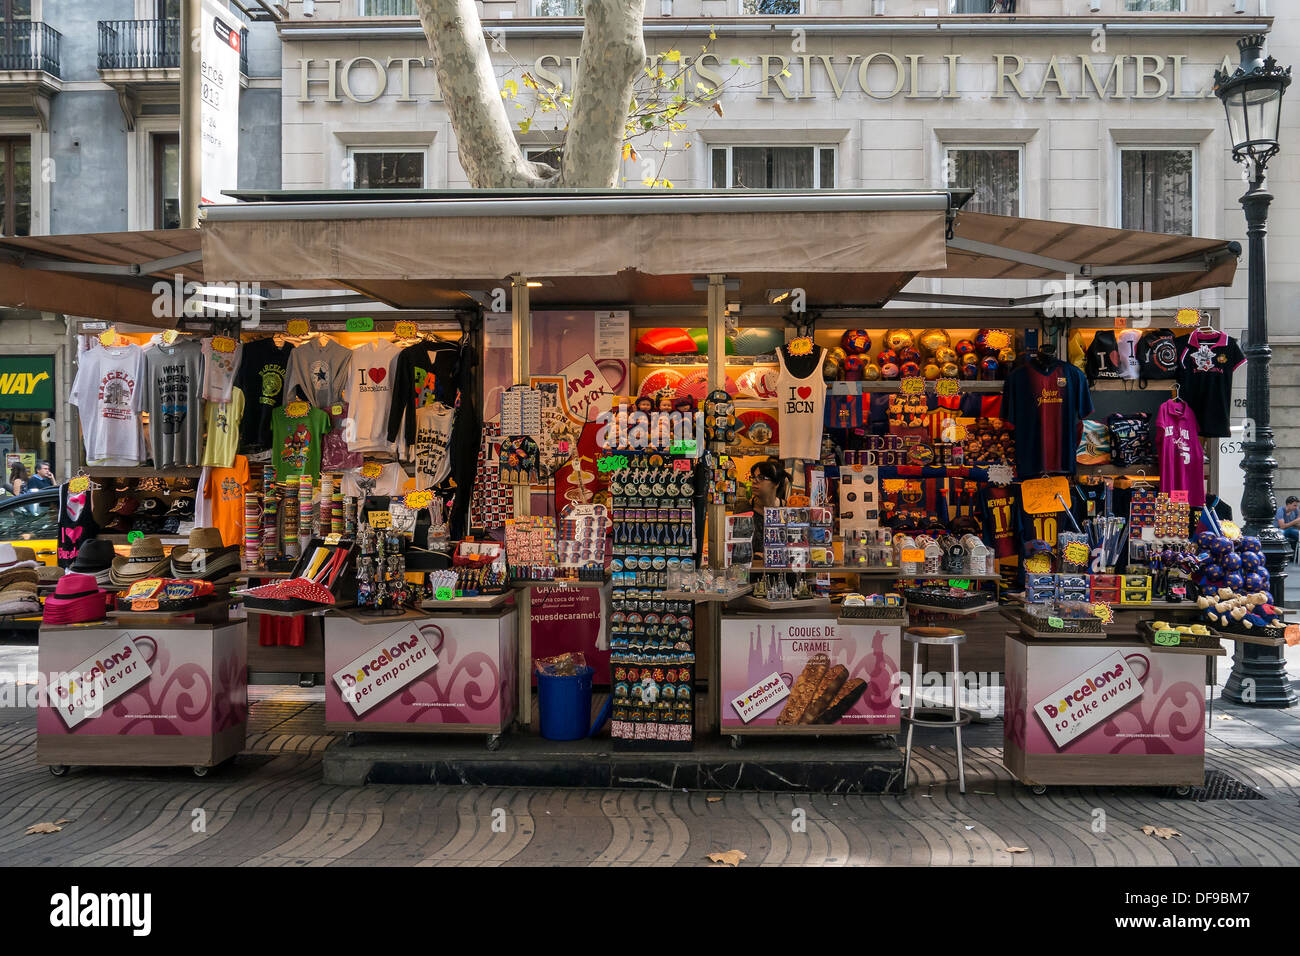 small tourist gift shop kiosk la rambla barcelona catalonia spain stock photo 61057703 alamy. Black Bedroom Furniture Sets. Home Design Ideas